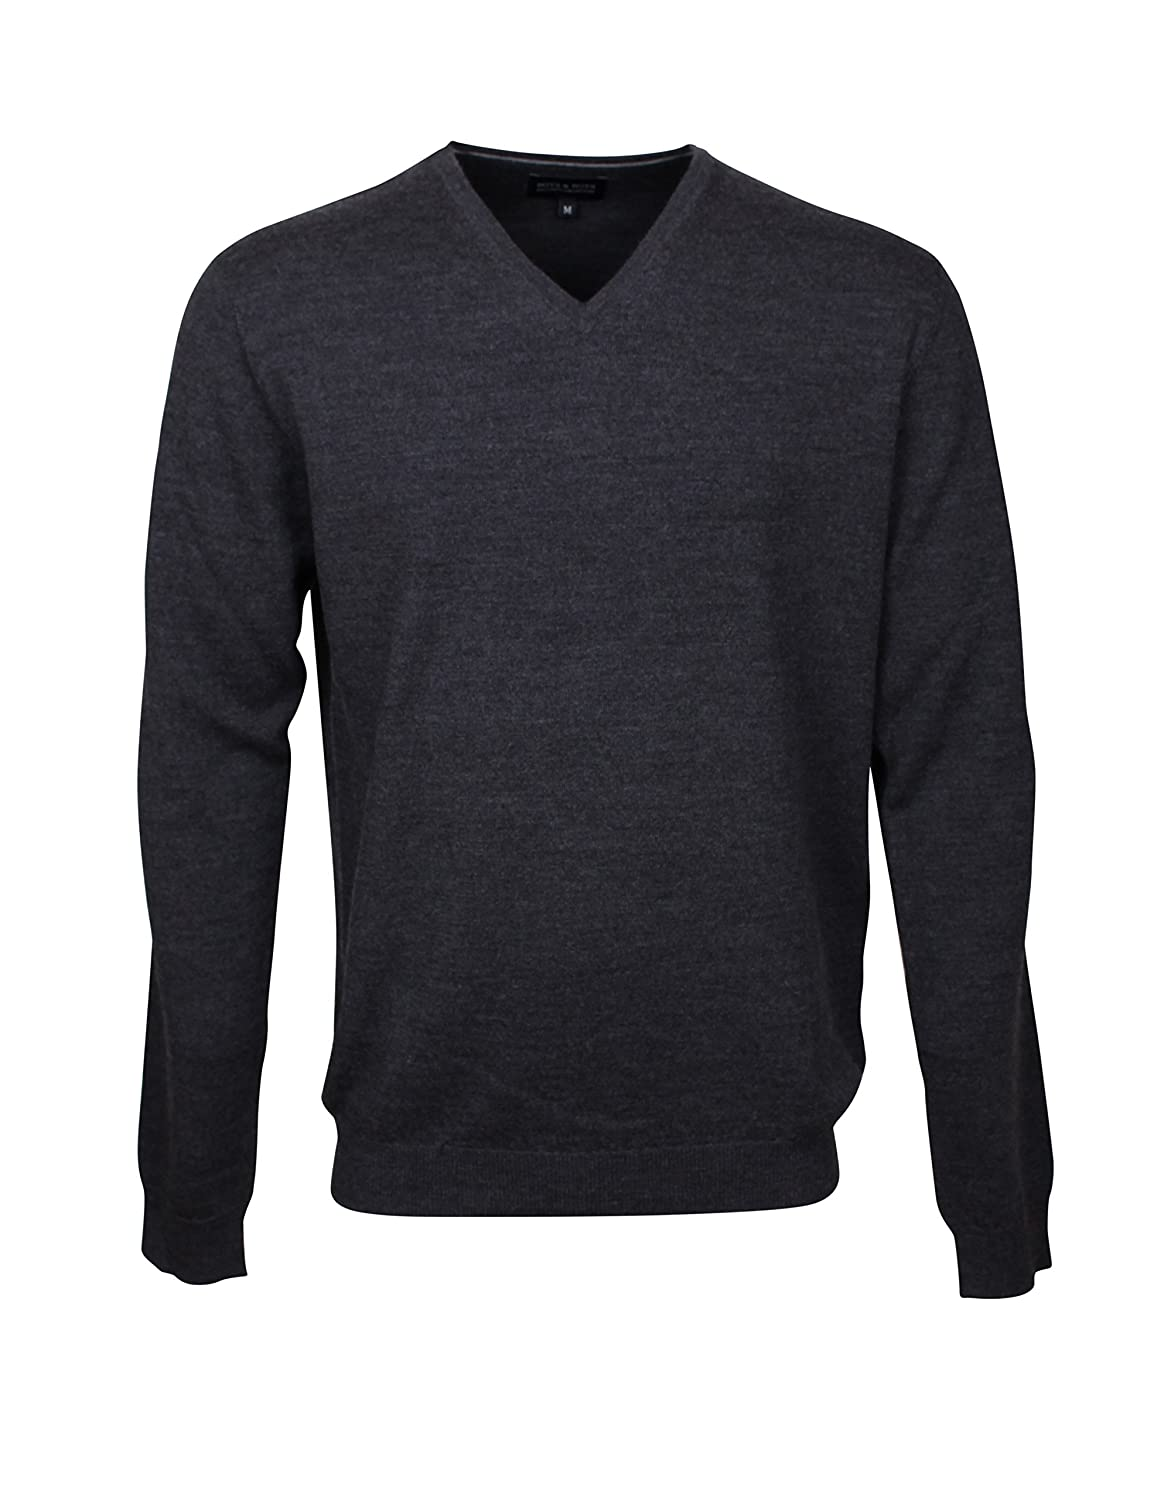 174611 - Bots & Bots - Gents V-Neck Pullover - Merino Wool - Normal Fit